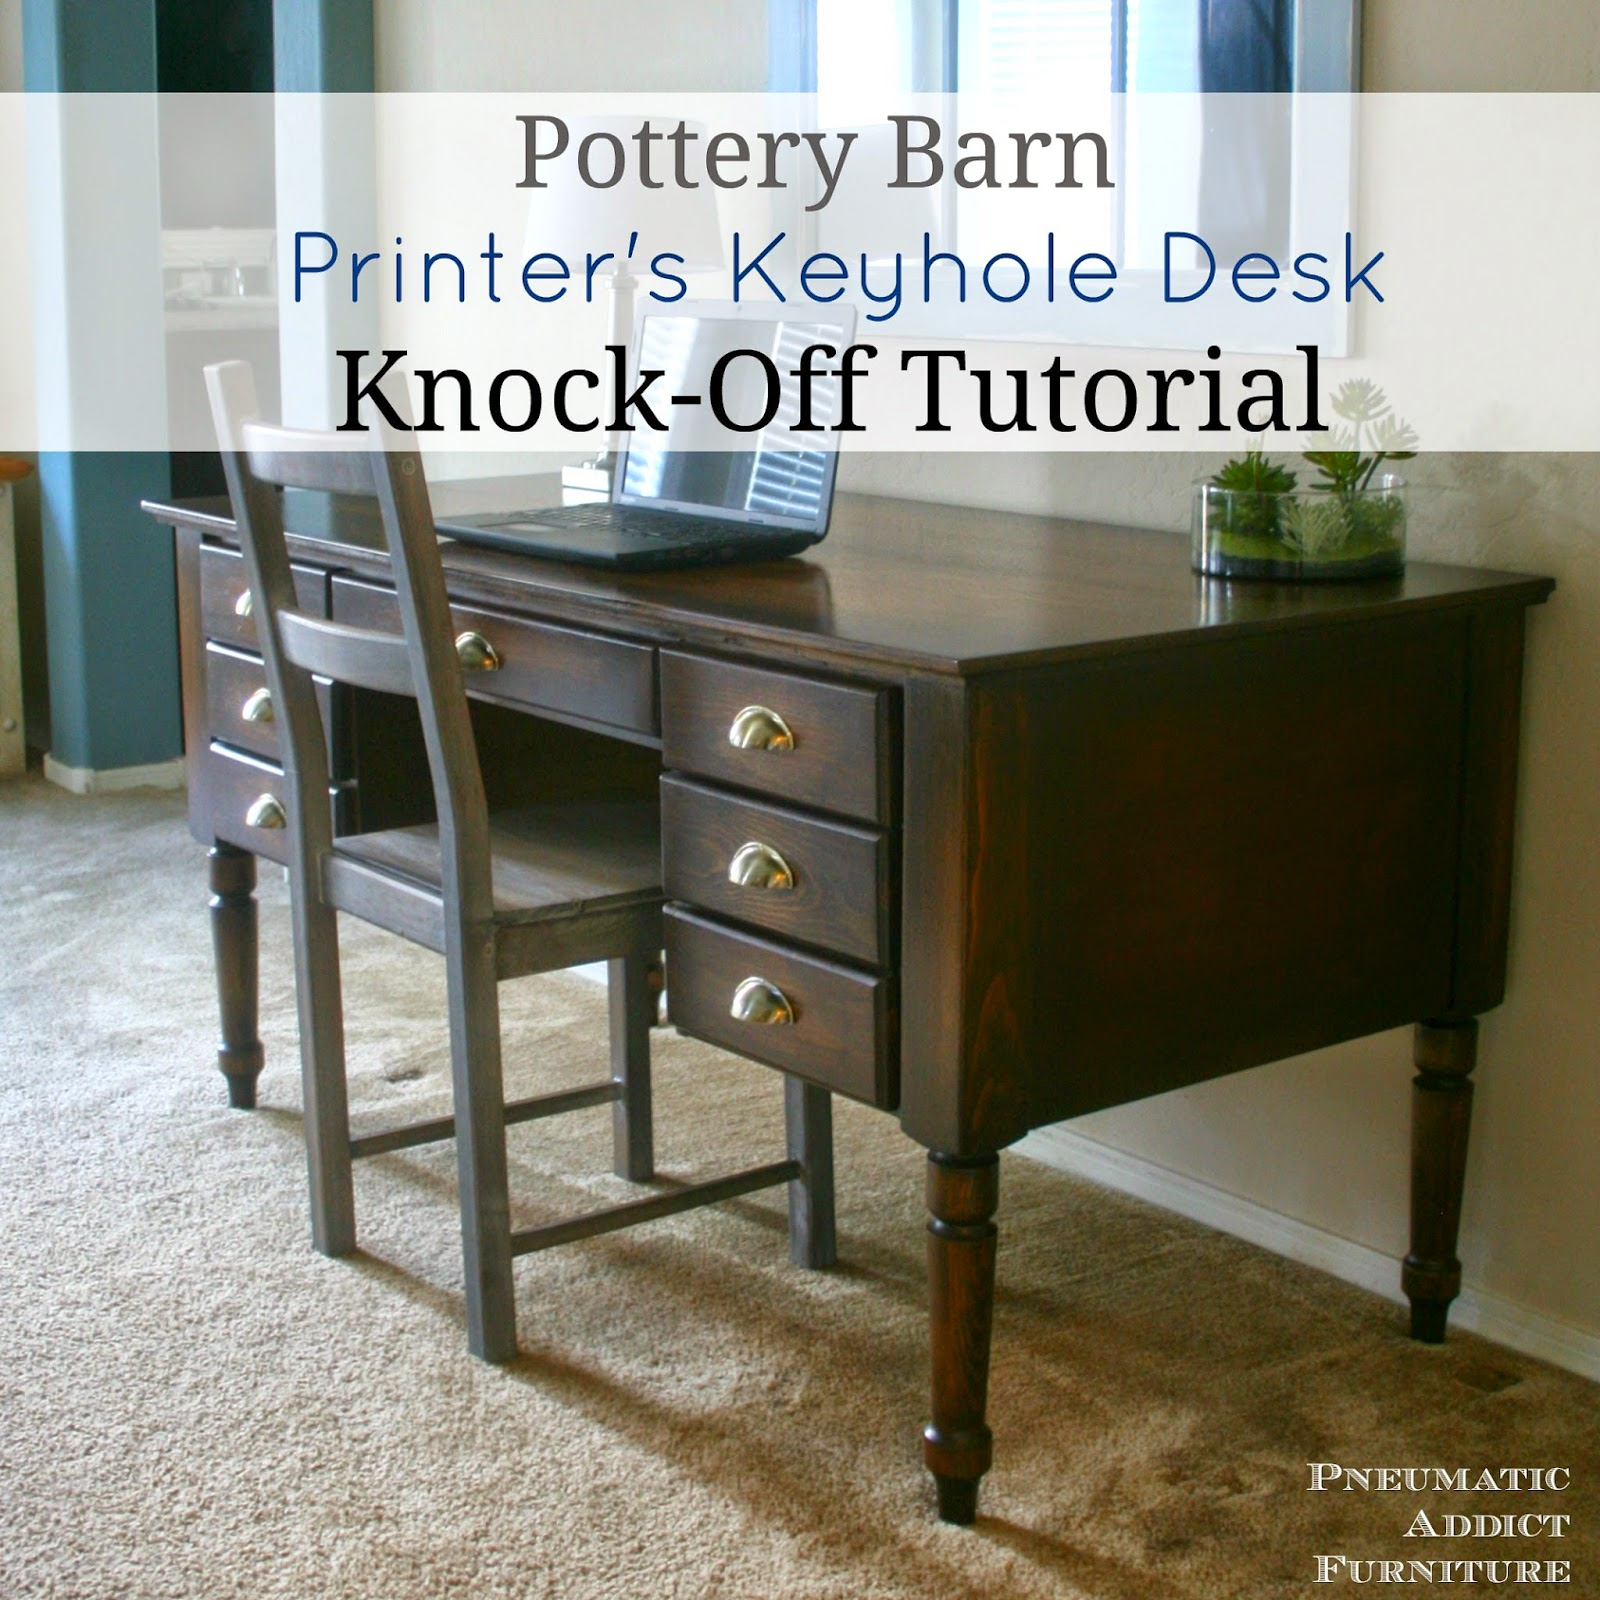 Pottery Barn Printer S Keyhole Desk Knock Off Tutorial Pneumatic Addict